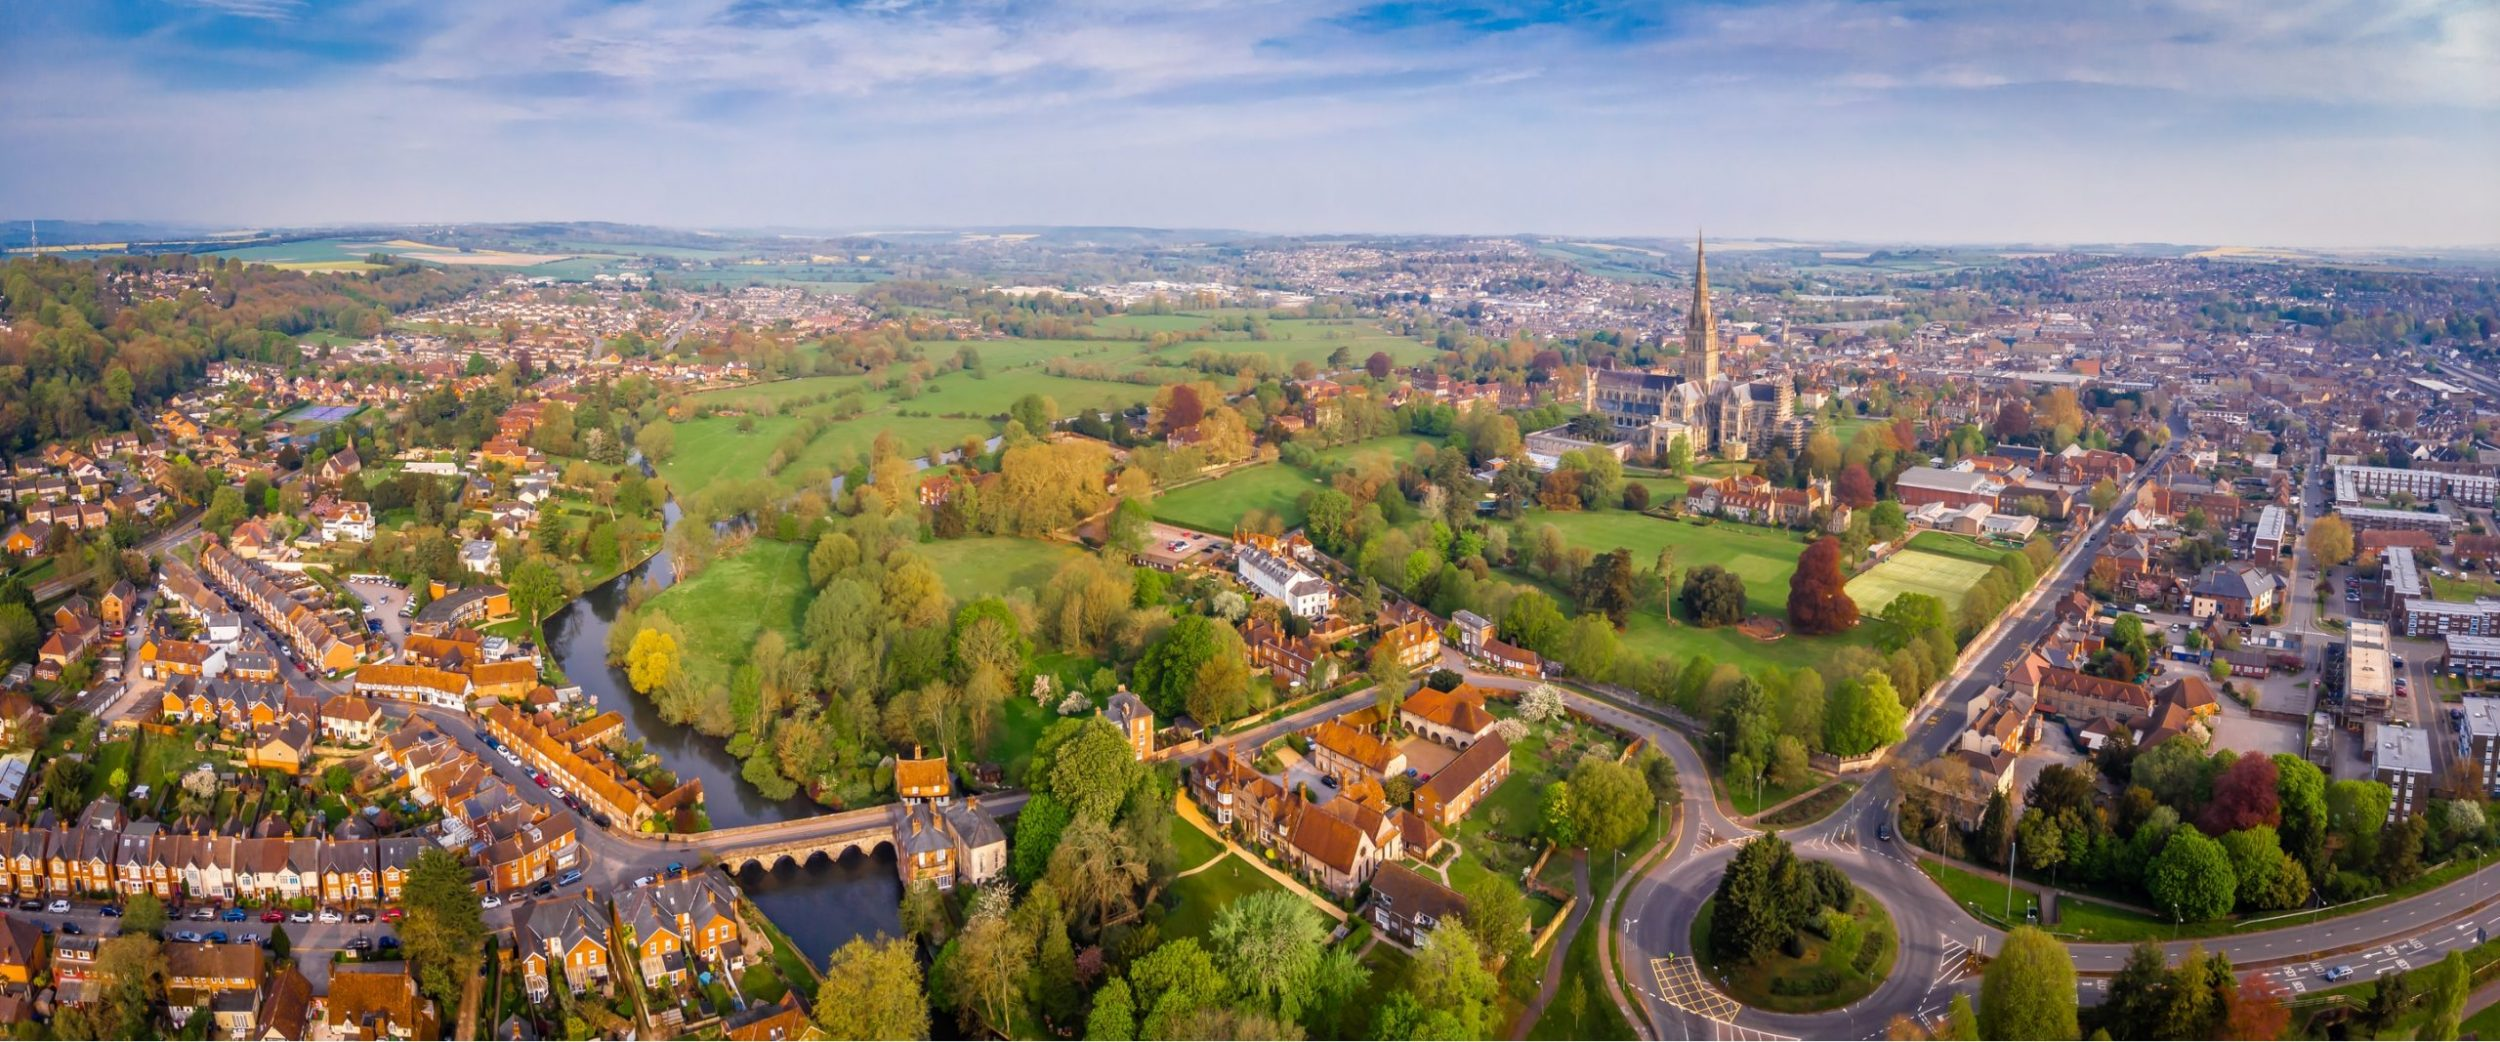 Panoramic view above Salisbury city, Dentons Digital, Website Design Build, SEO and Social Media Marketing, Salisbury